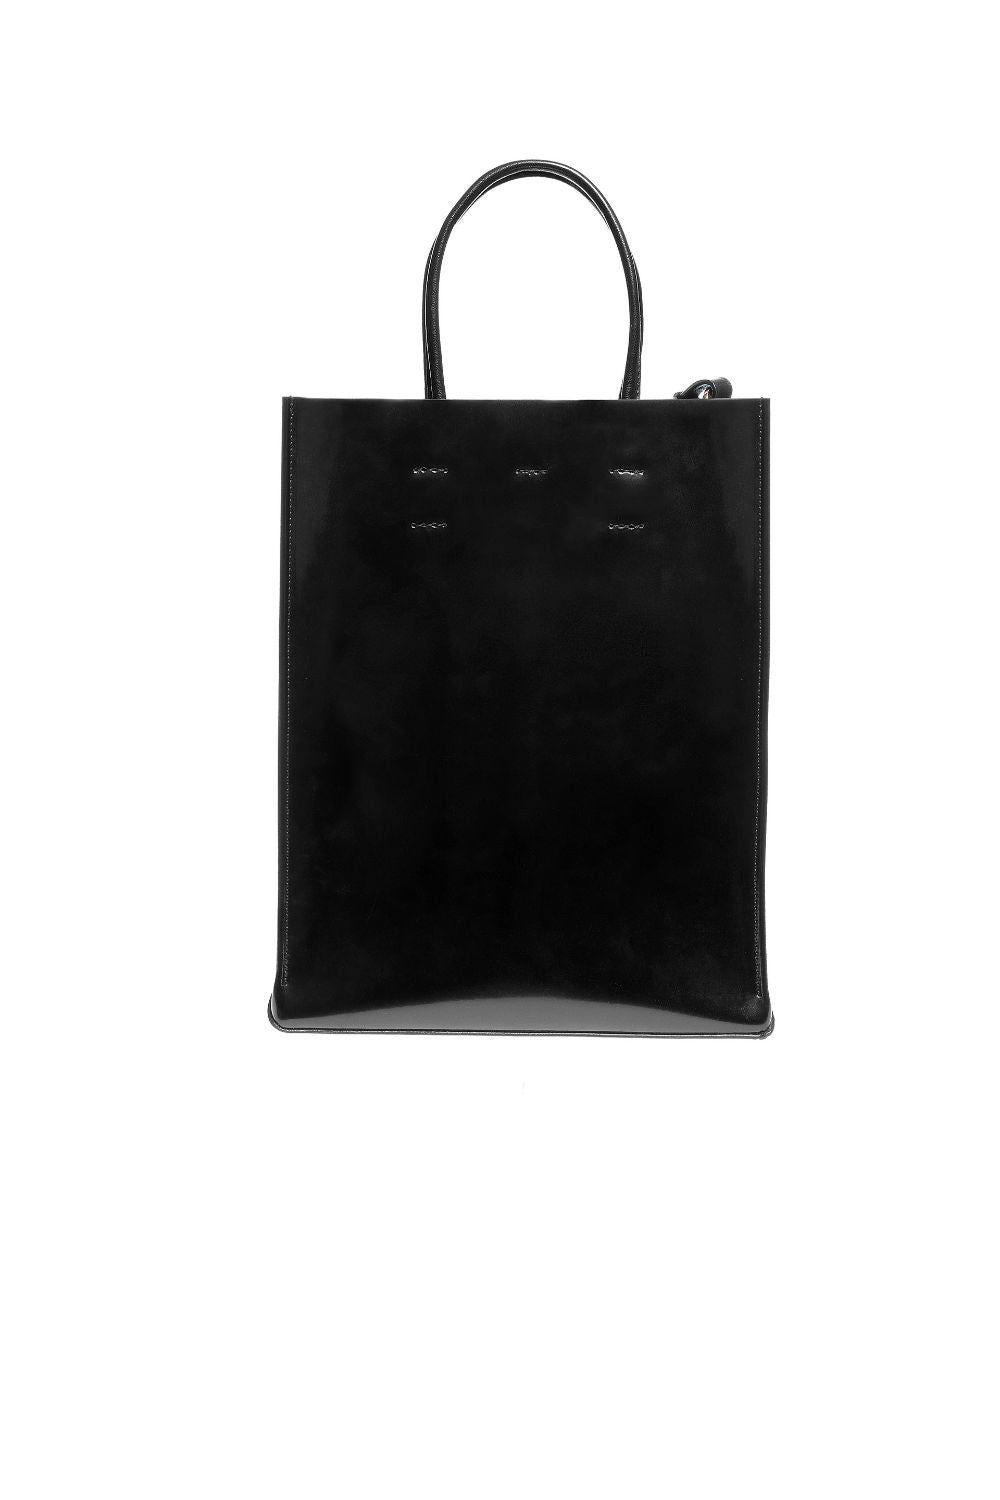 N21 Shopping Bag Small Black